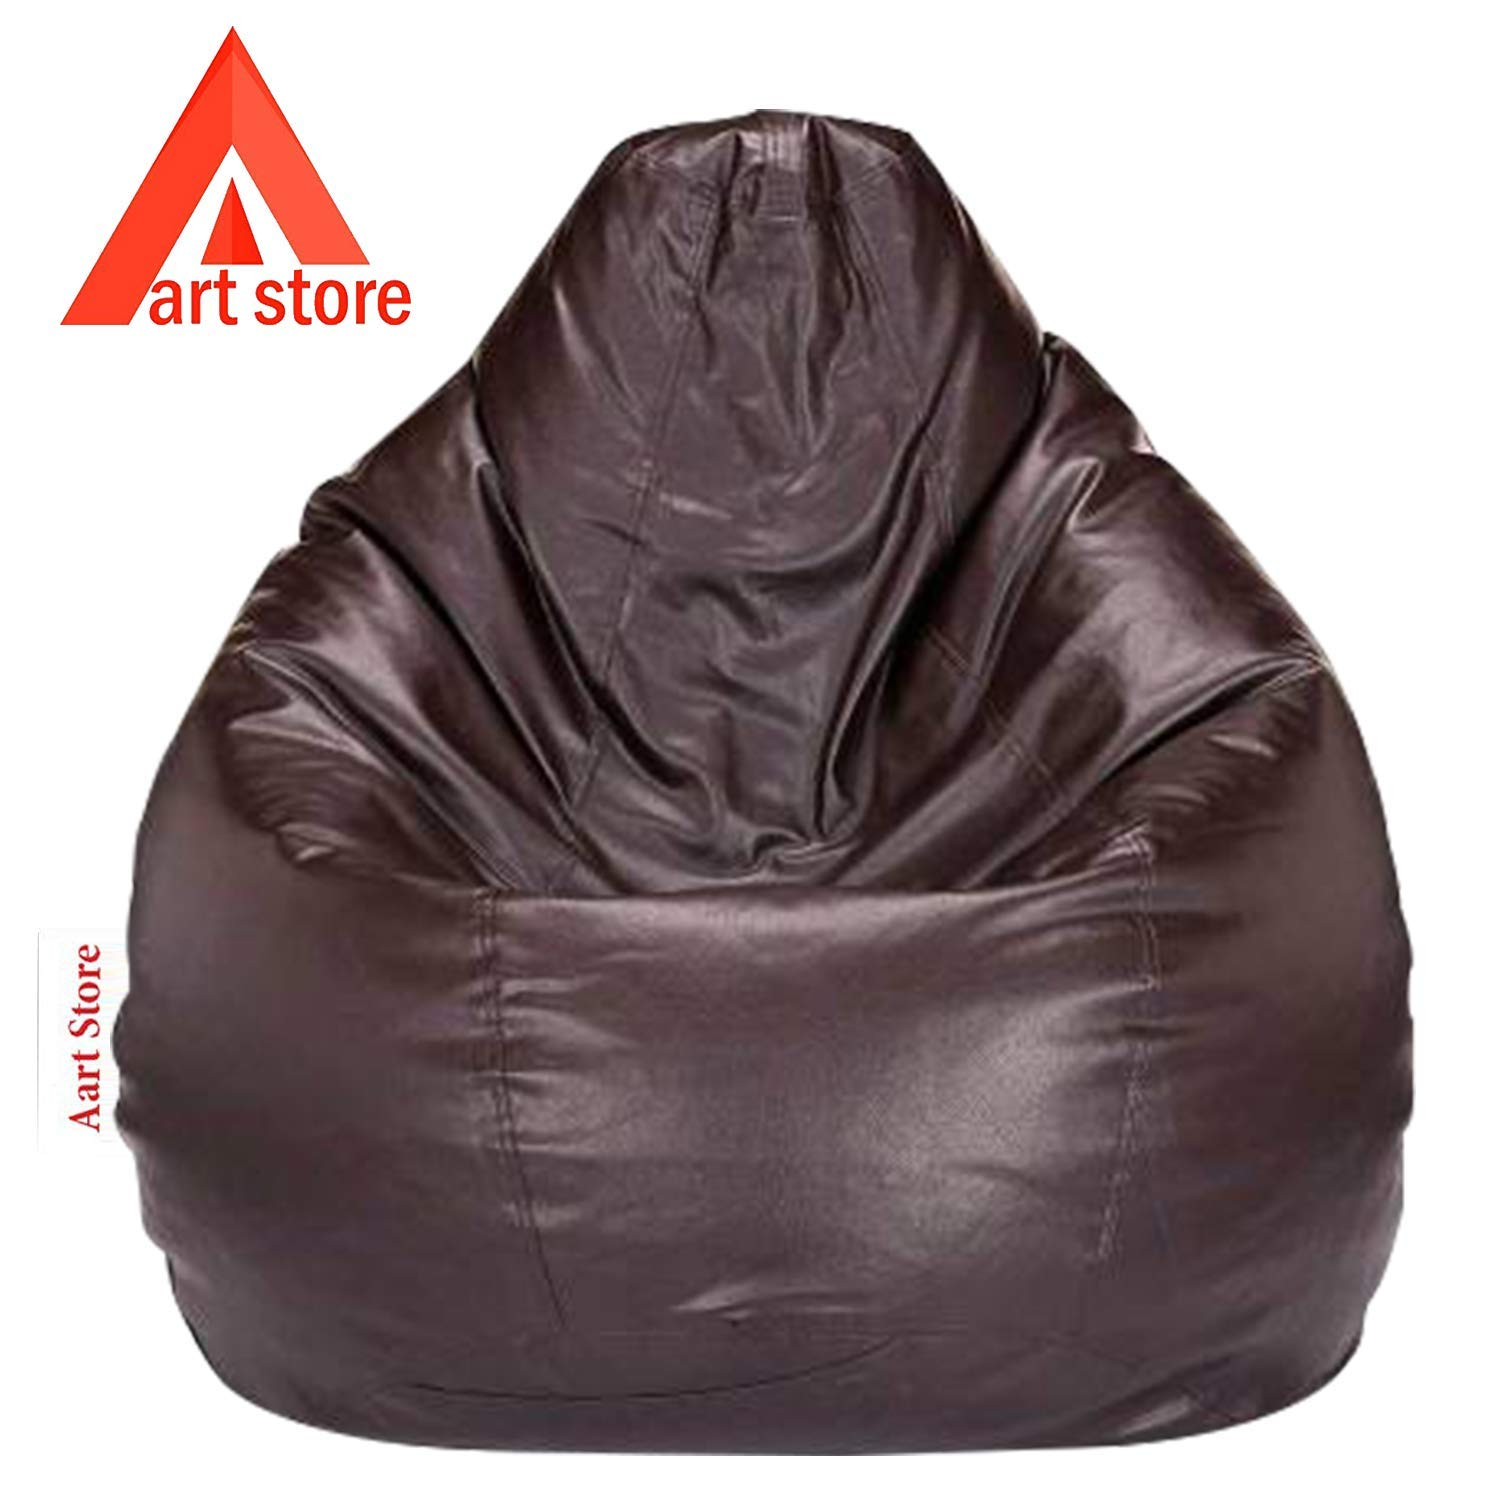 Aart Store Filled Bean Bag with Bean XXXL Size Brown -for Home/Office